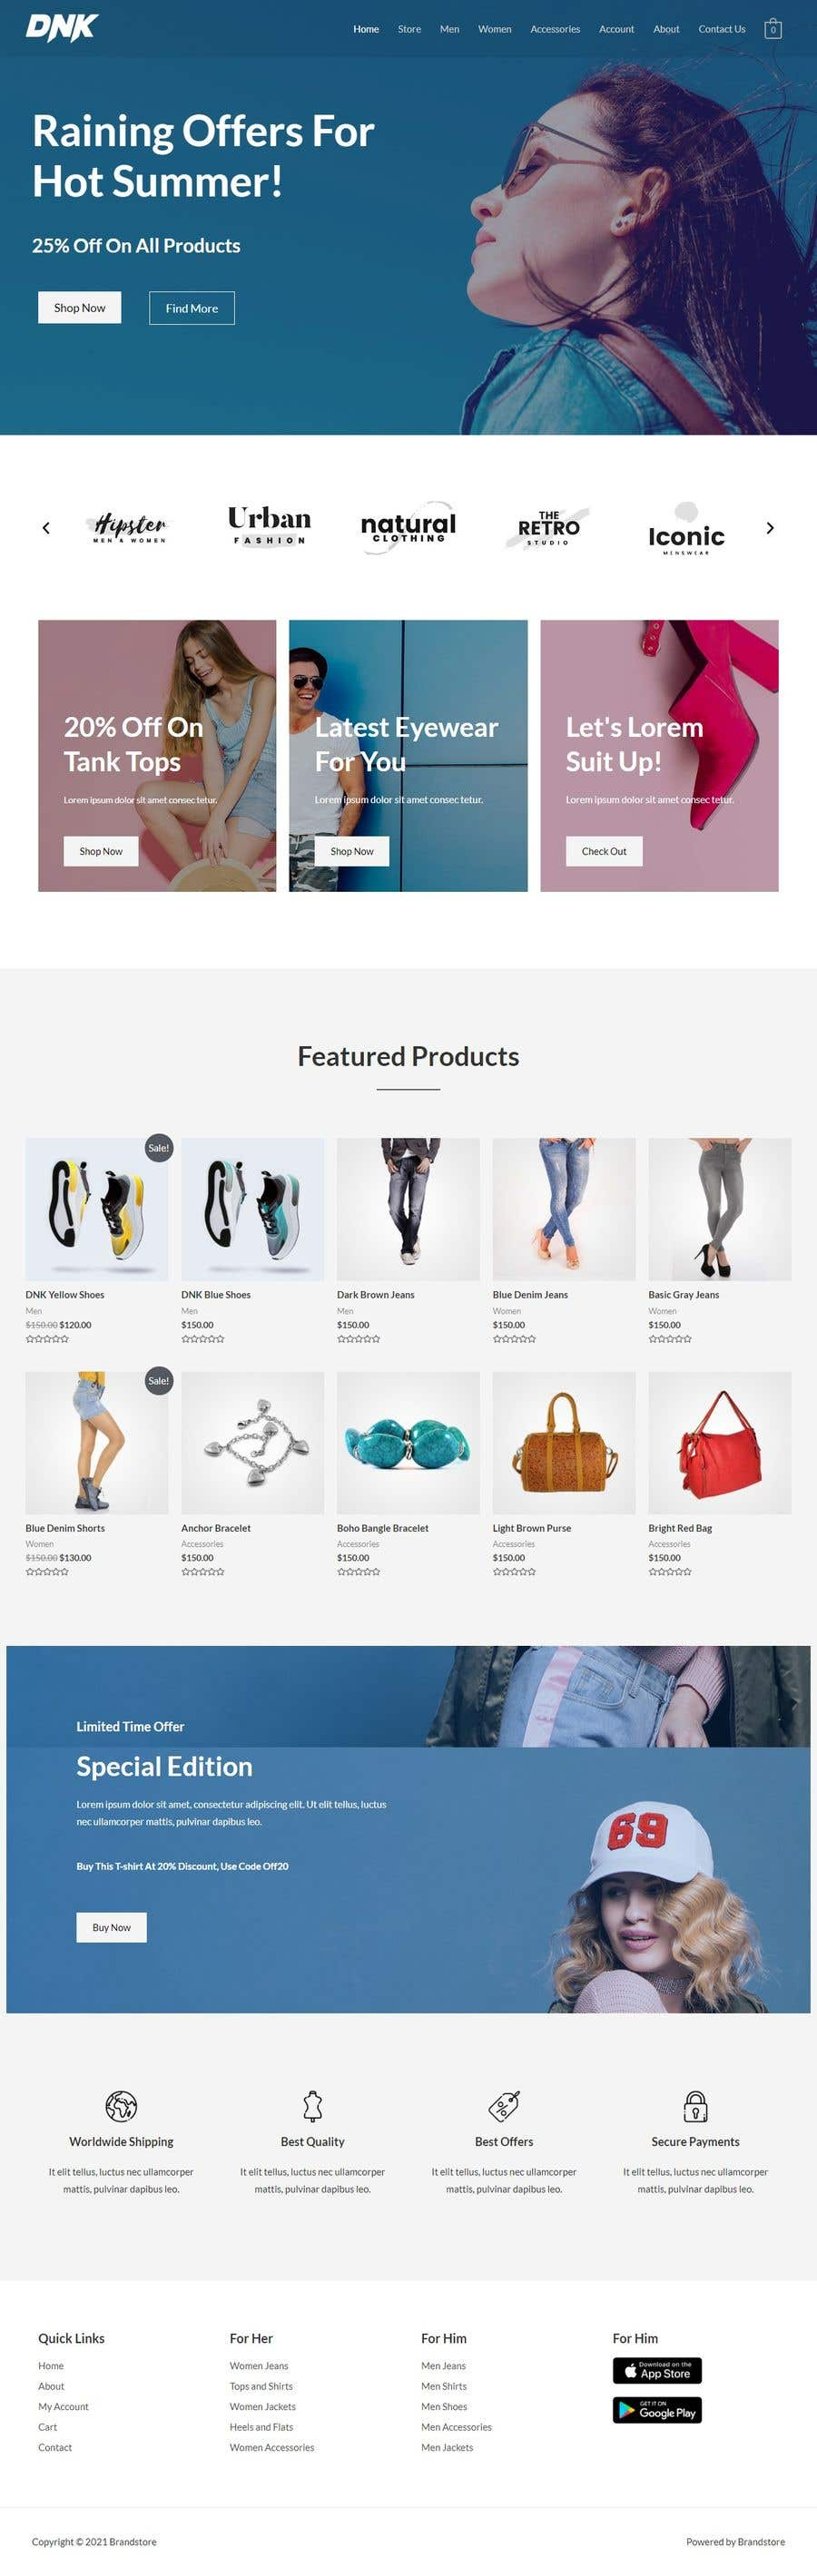 Bài tham dự cuộc thi #                                        16                                      cho                                         I need a Landing Page Website for Small Business Stores